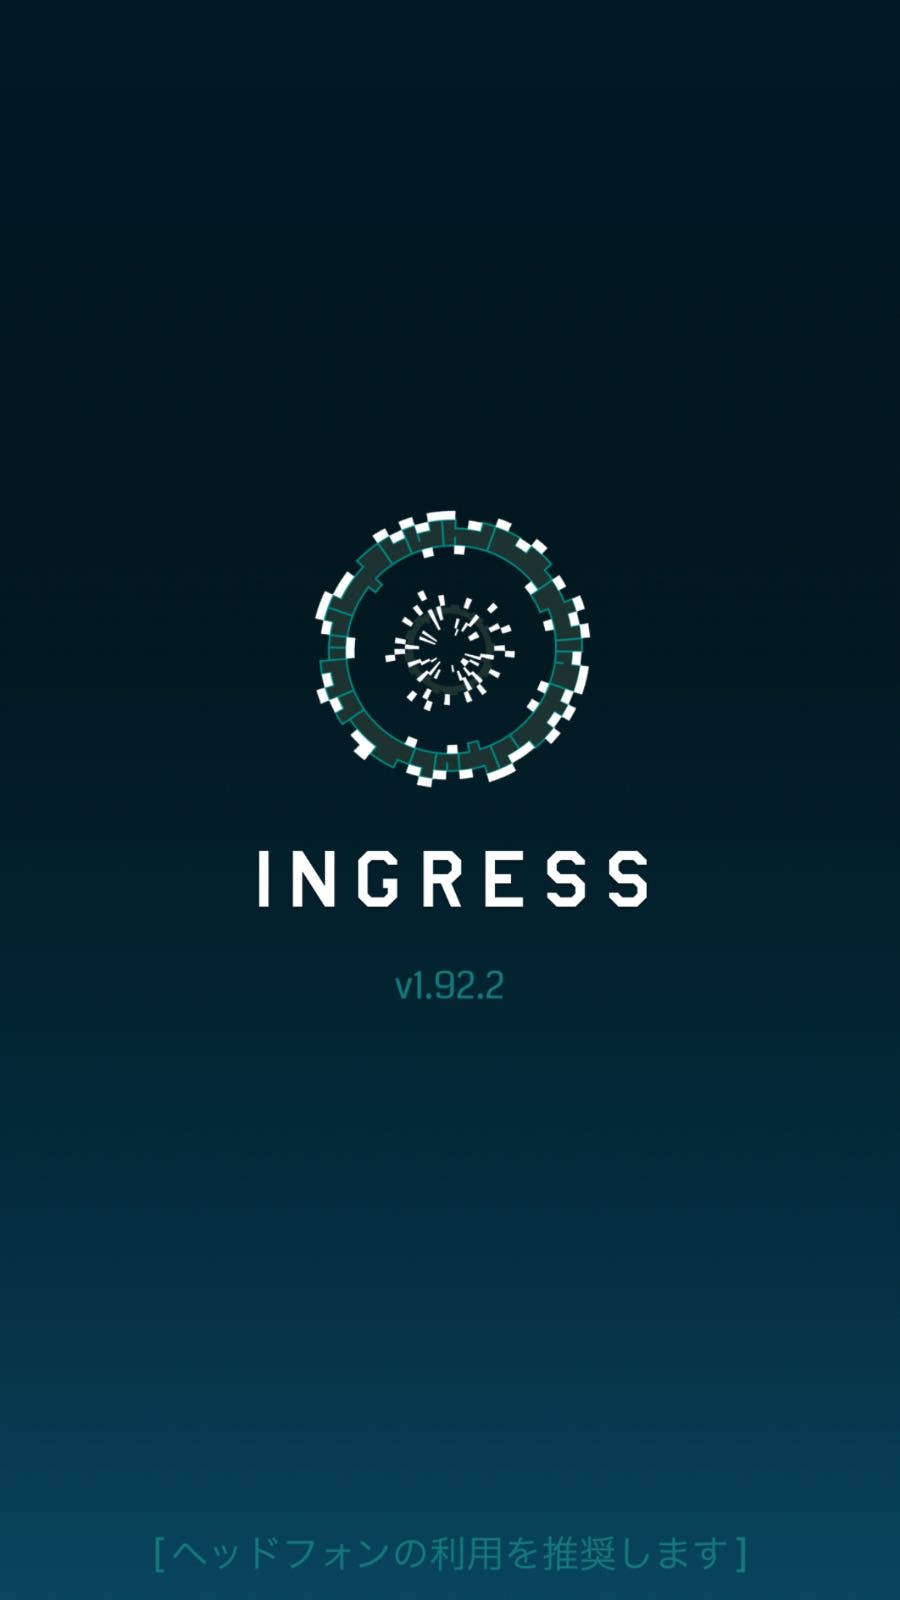 Ingress update IMG 1245